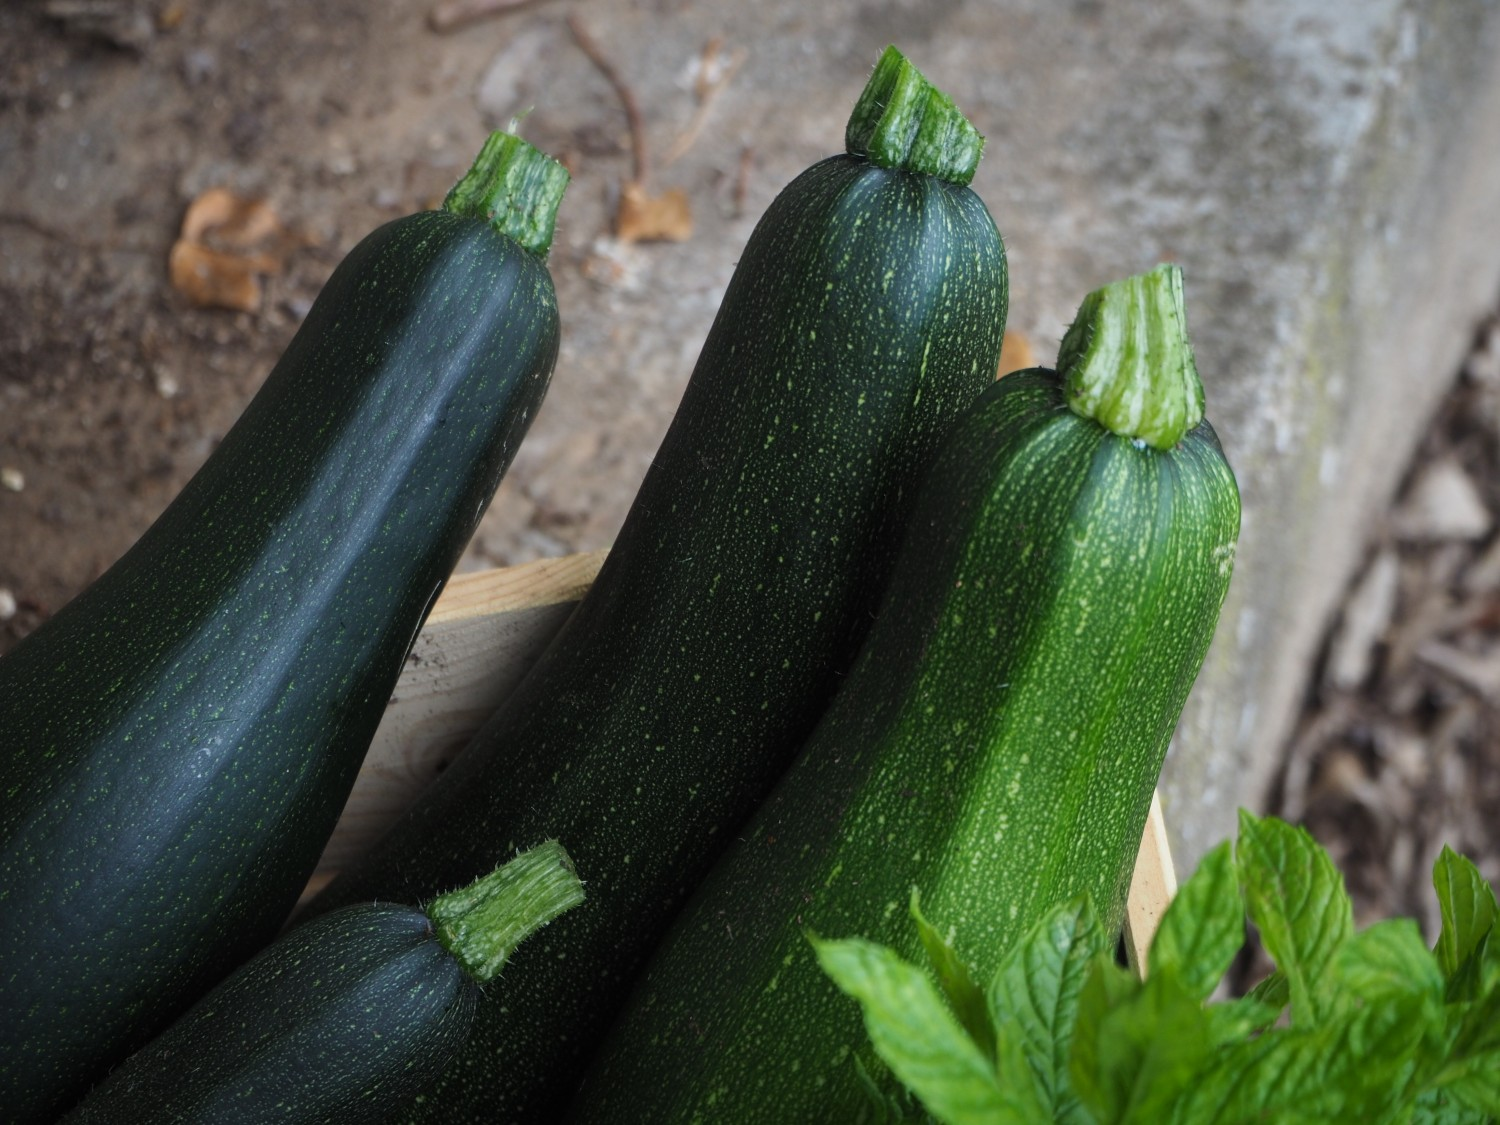 courgette ritalechat